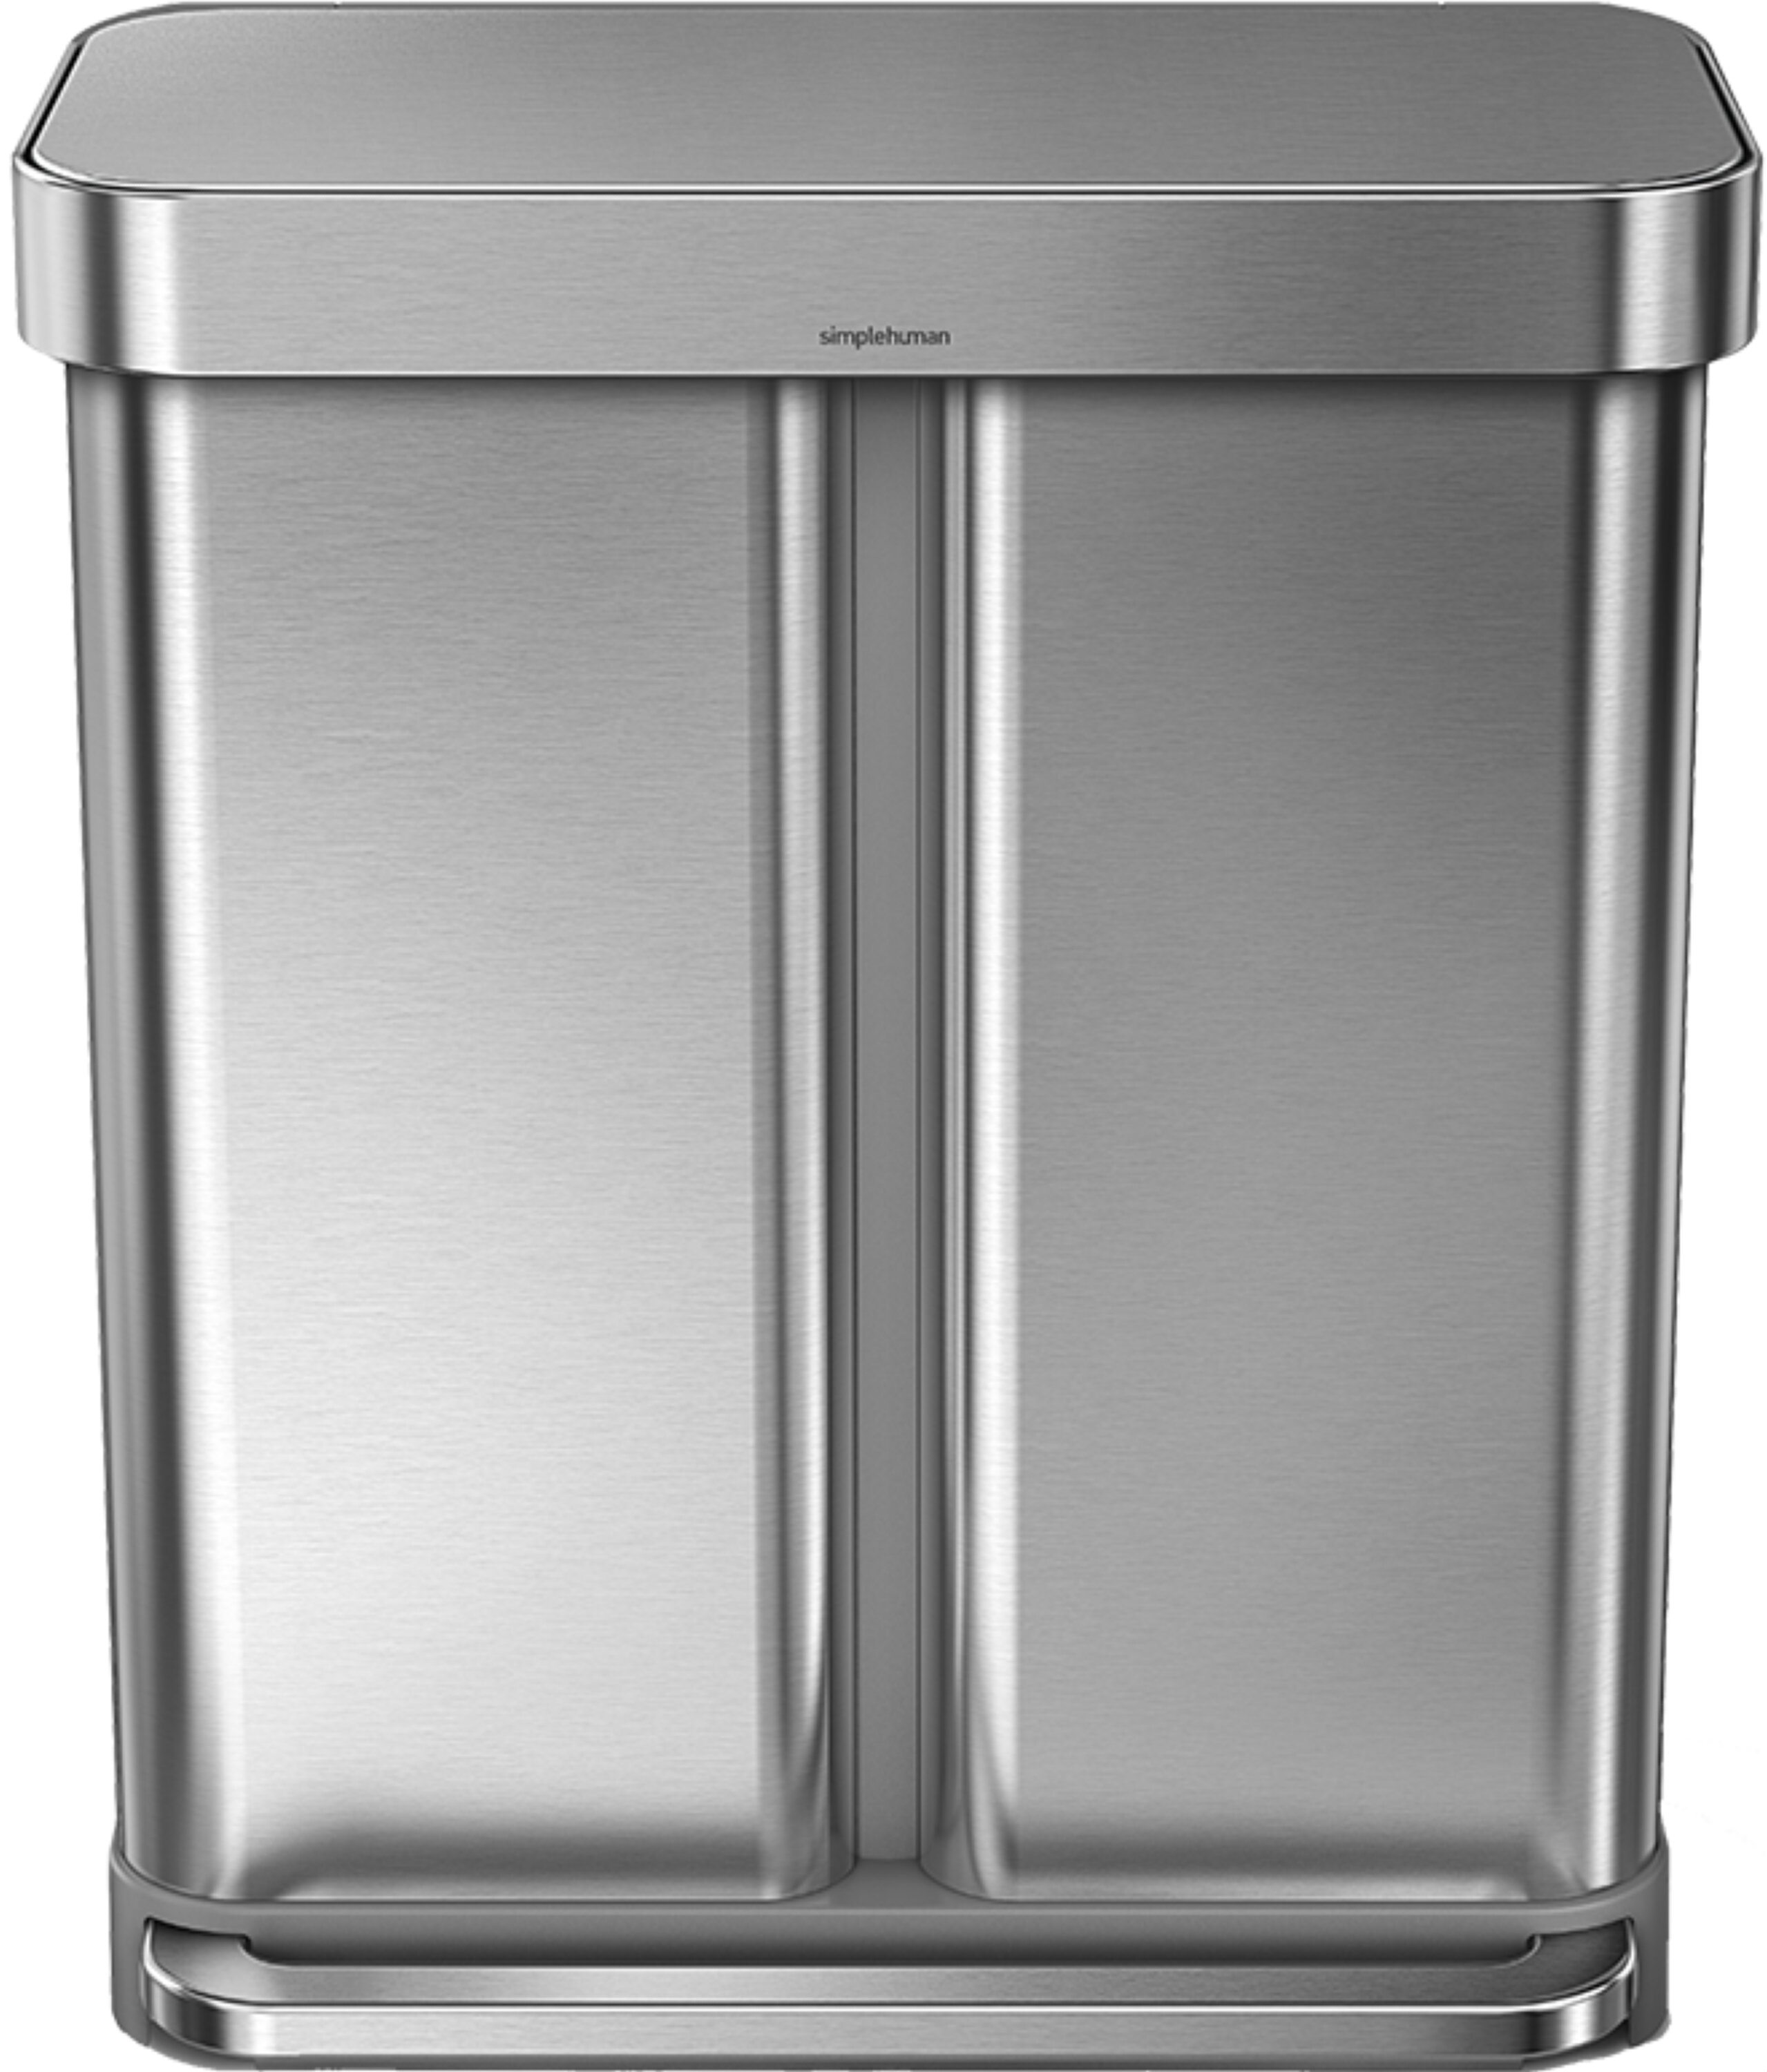 15 Gallon Dual Compartment Rectangular Step Trash Can with Liner Pocket,  Recycler, Stainless Steel